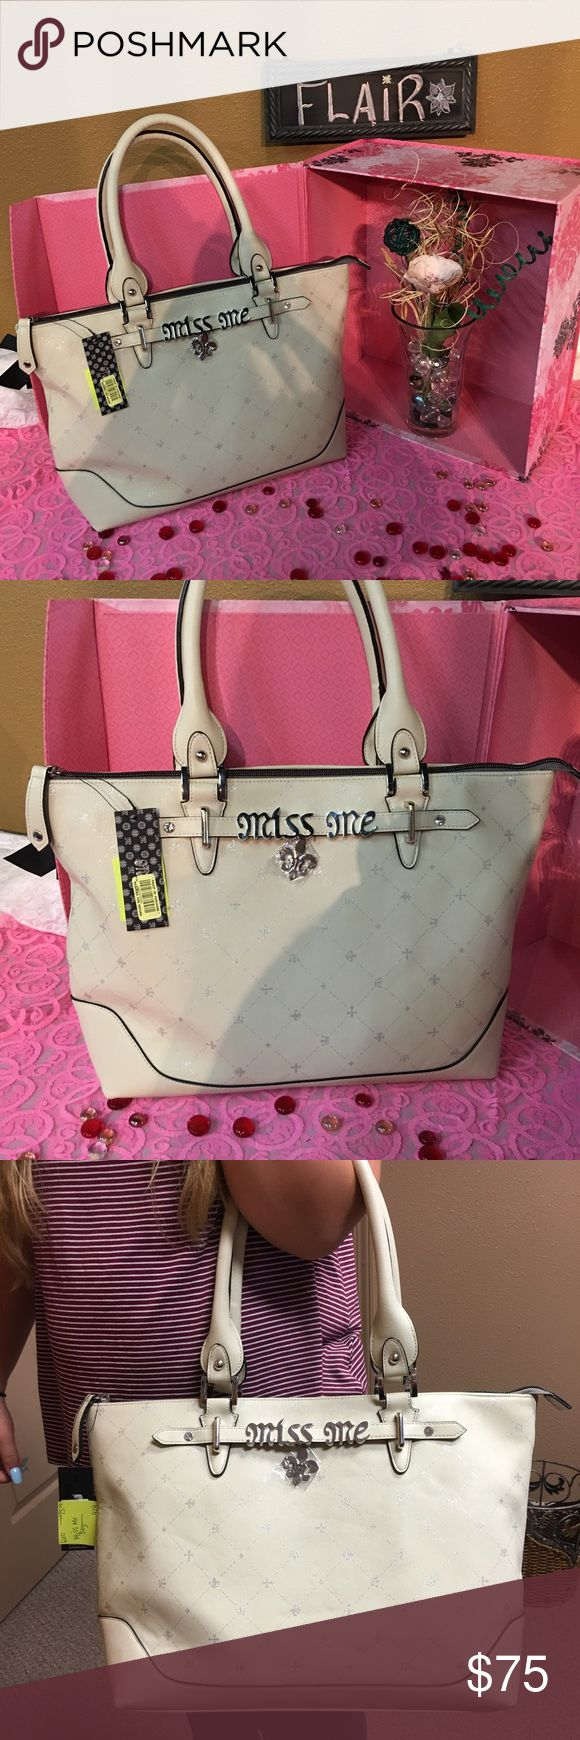 Miss me purse Large miss me purse patent leather ivory colored with silver hardware! Super cute NWT Miss Me Bags Shoulder Bags